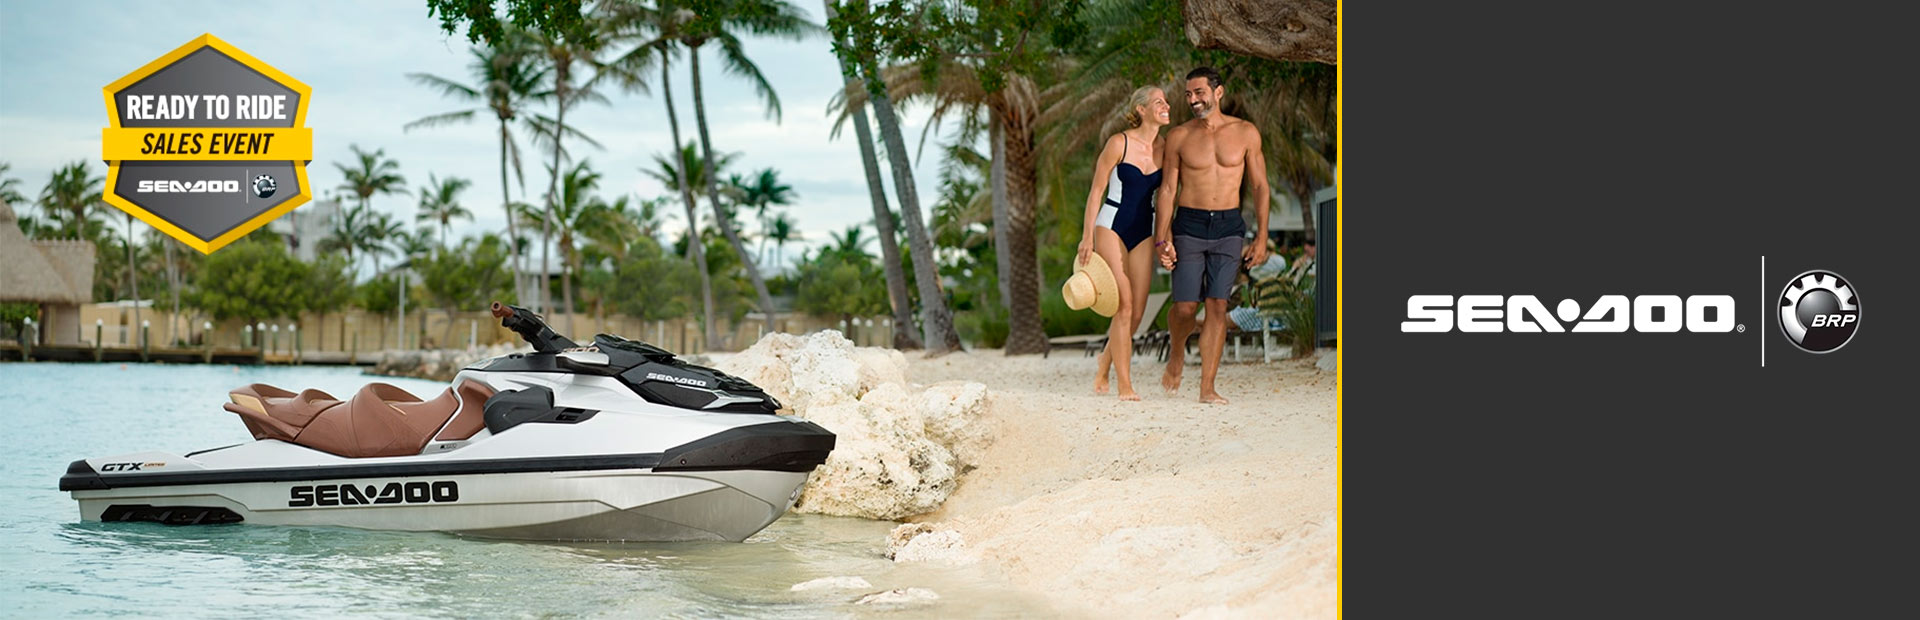 Sea-Doo Ready to Ride Sales Event